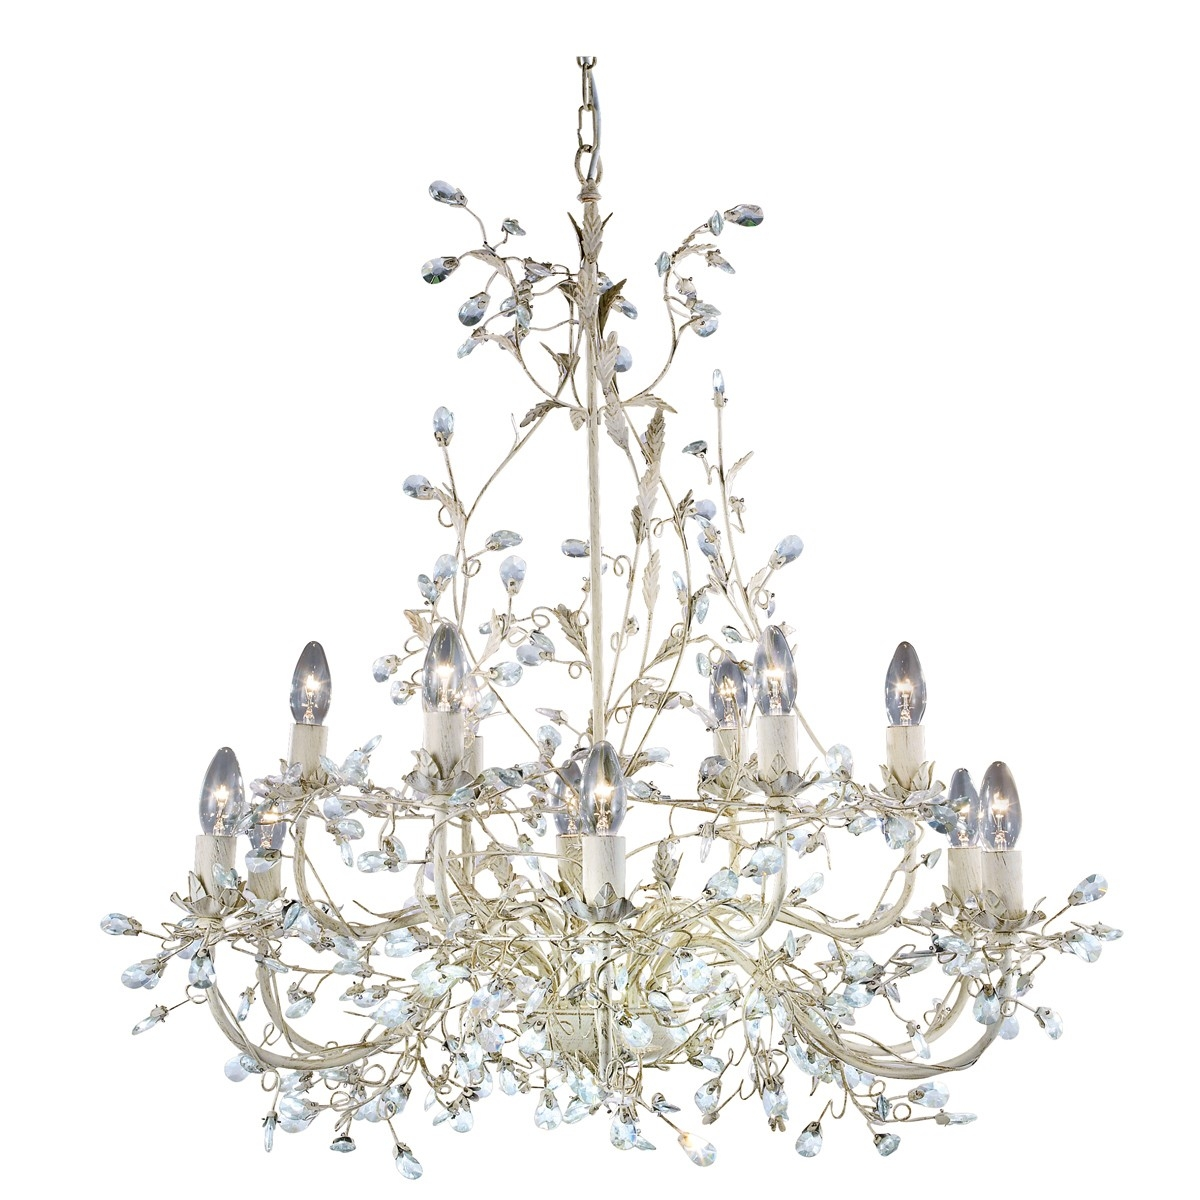 Cream Gold Finish 12 Light Chandelier With Crystal Dressing Pertaining To Cream Gold Chandelier (Image 5 of 15)